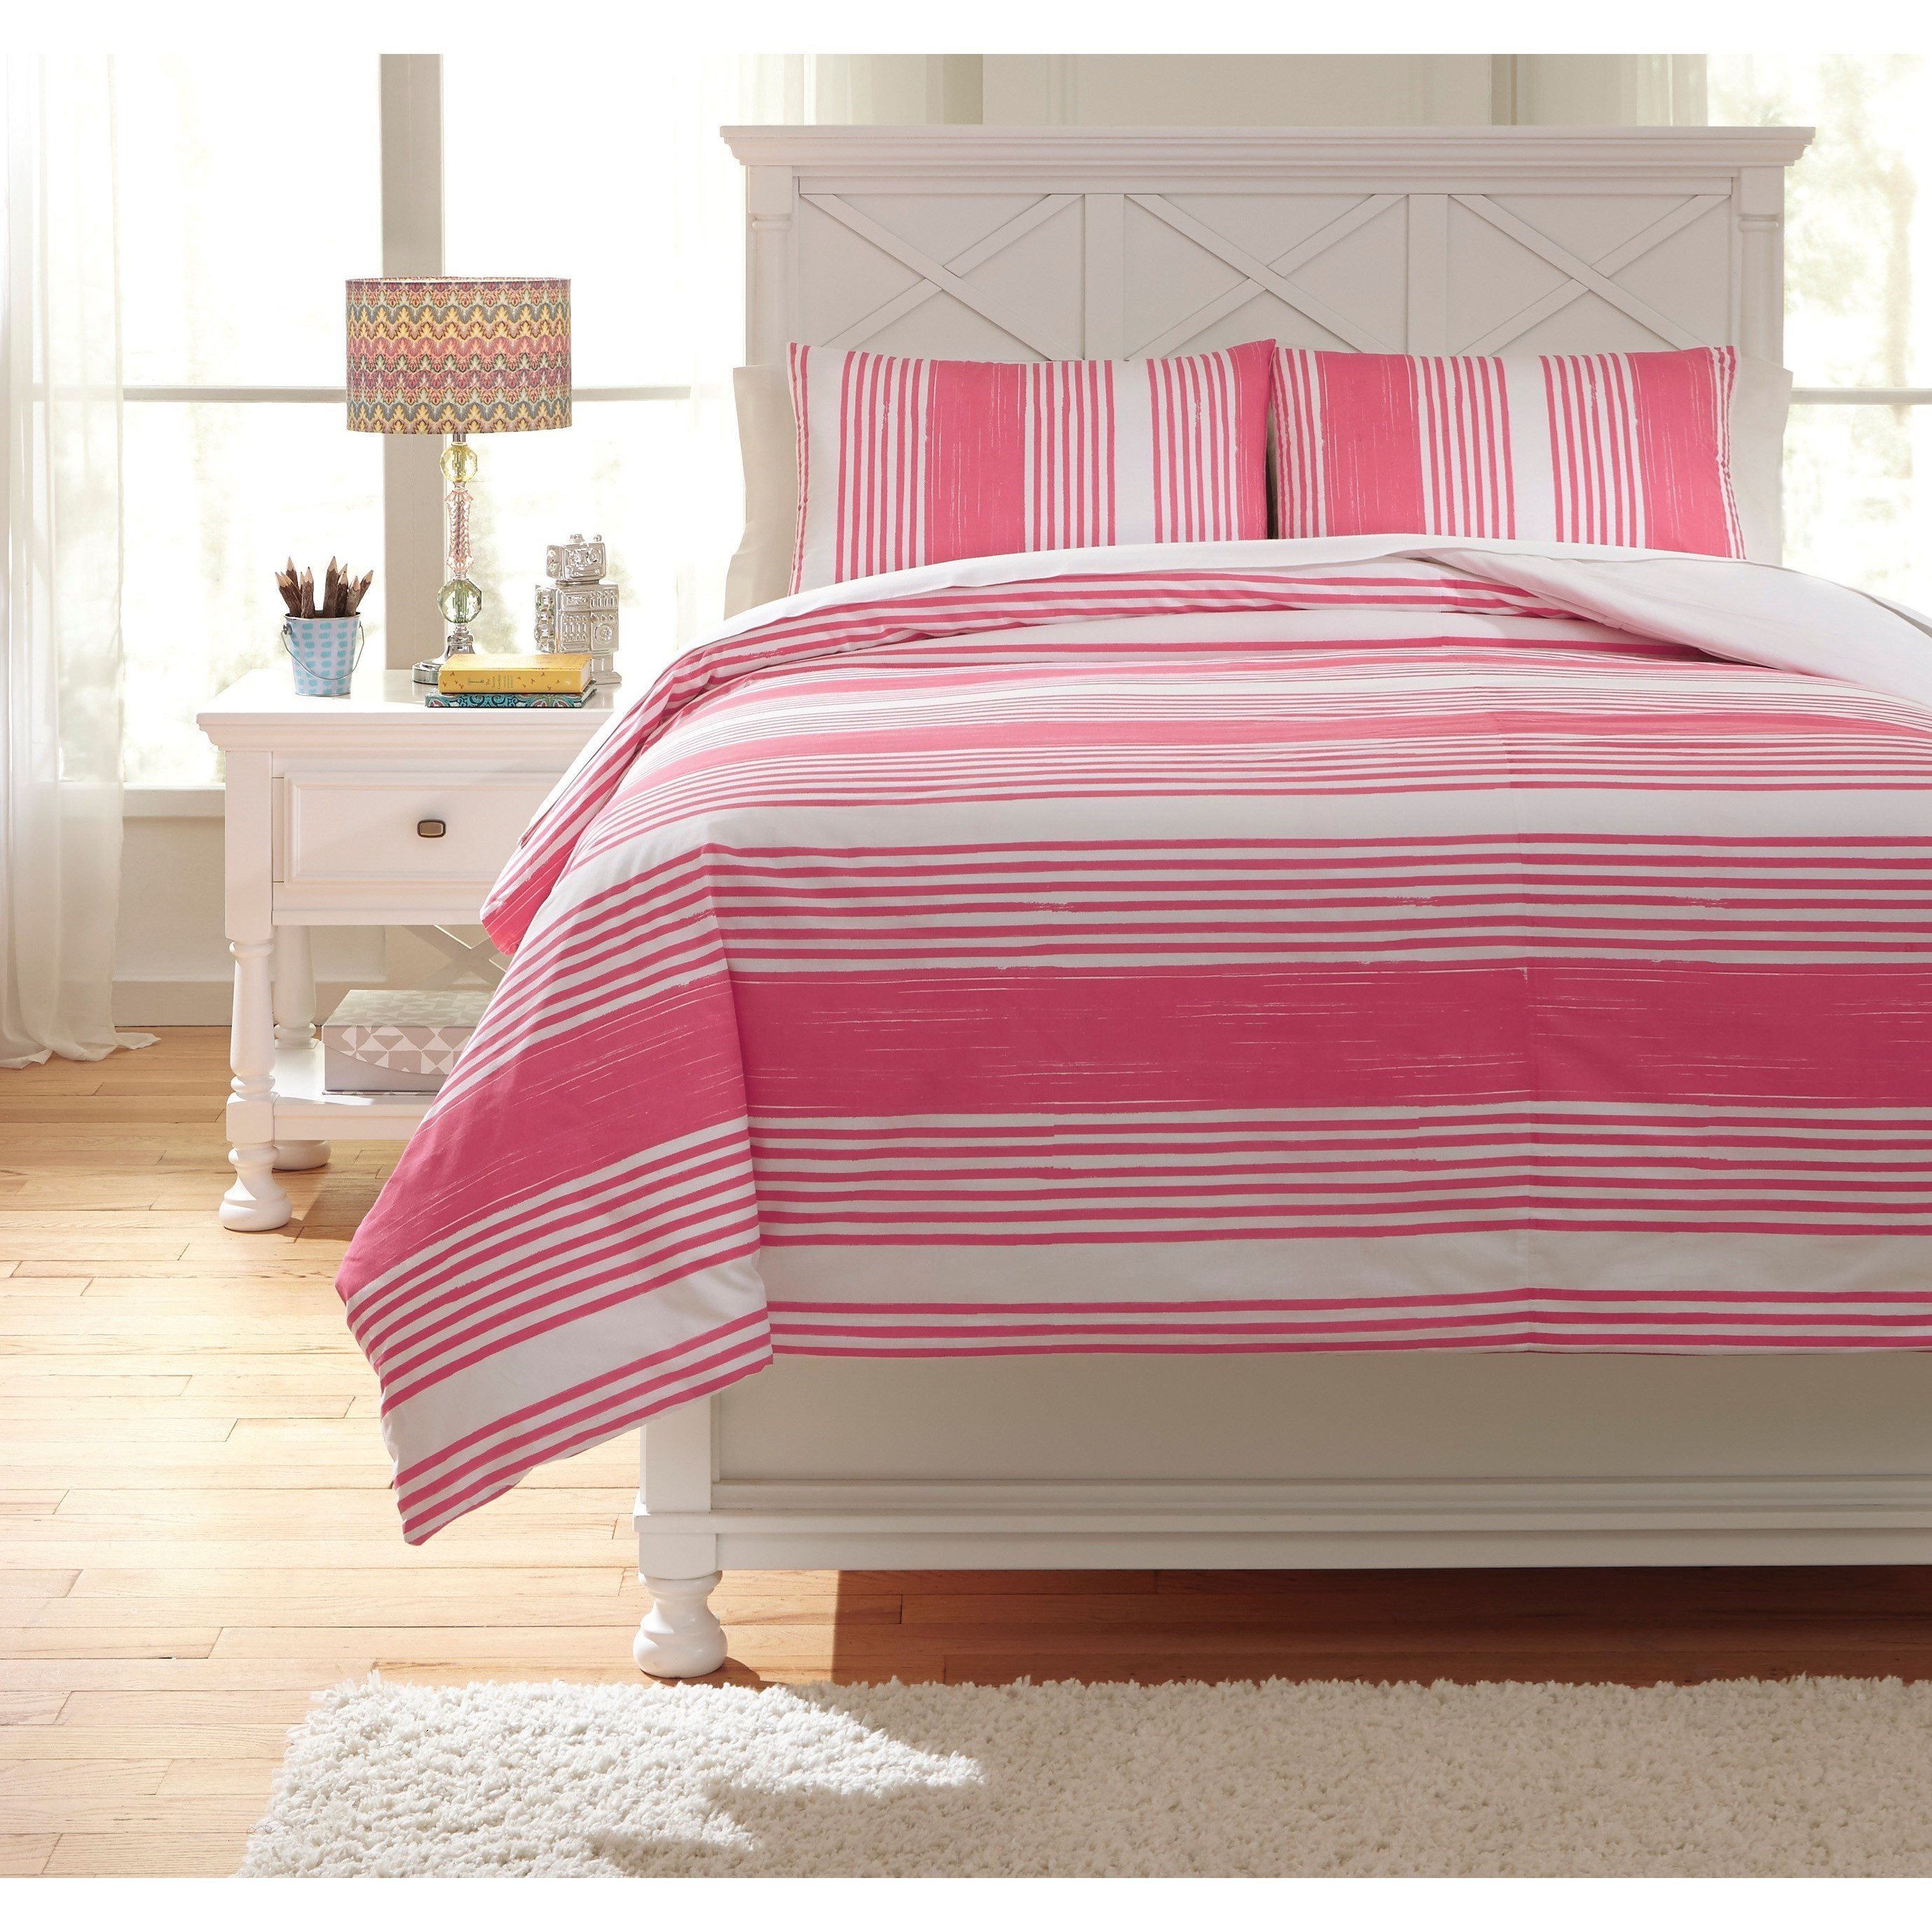 Pink Duvet Cover Bedding Sets Full Taries Pink Duvet Cover Set By Signature Design By Ashley At L Fish